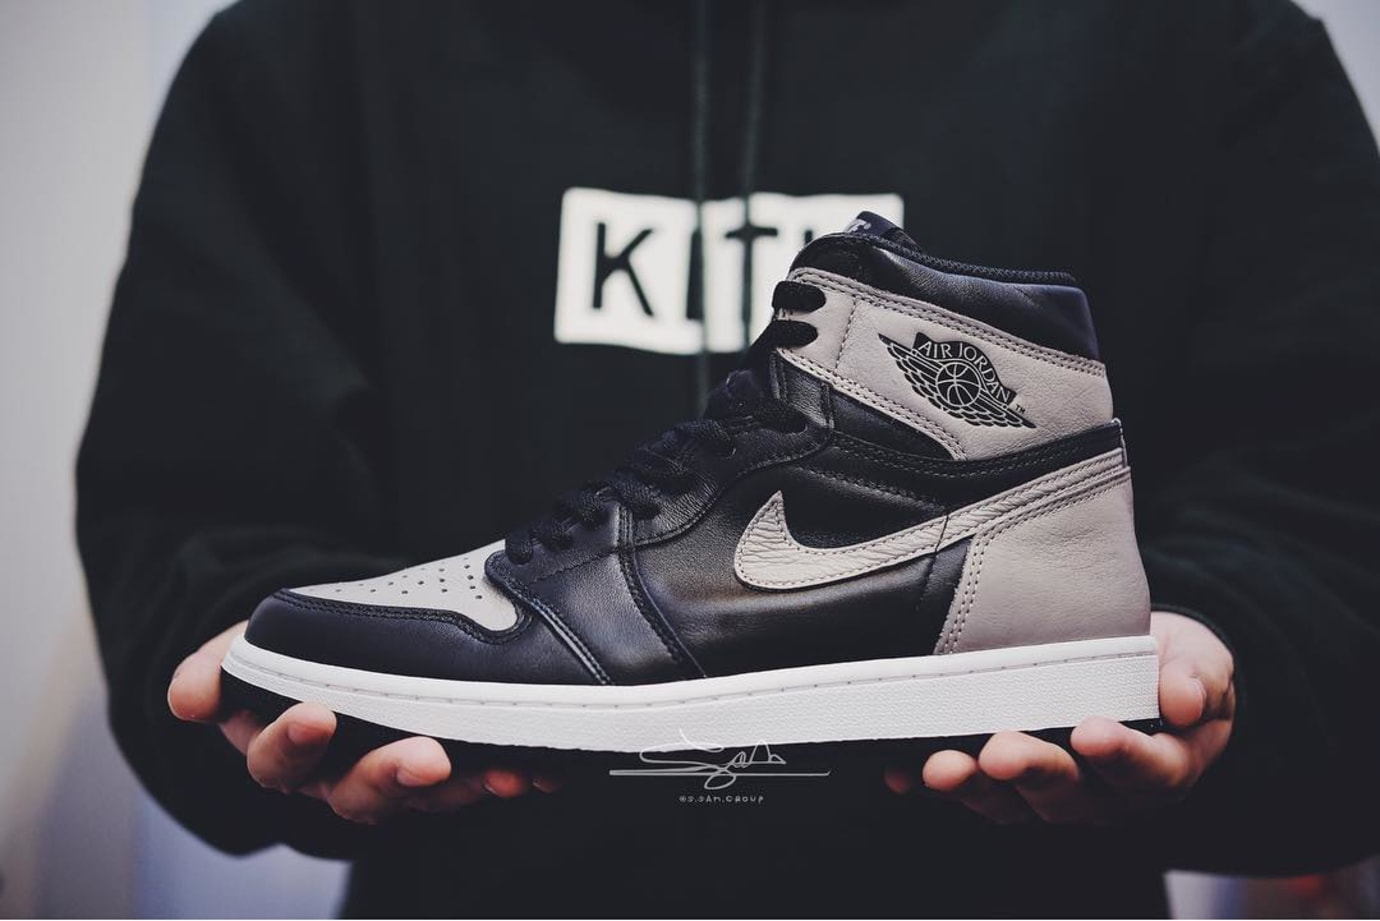 Air Jordan 1 I High OG Shadow 2018 Release Date 555088-013 Profile